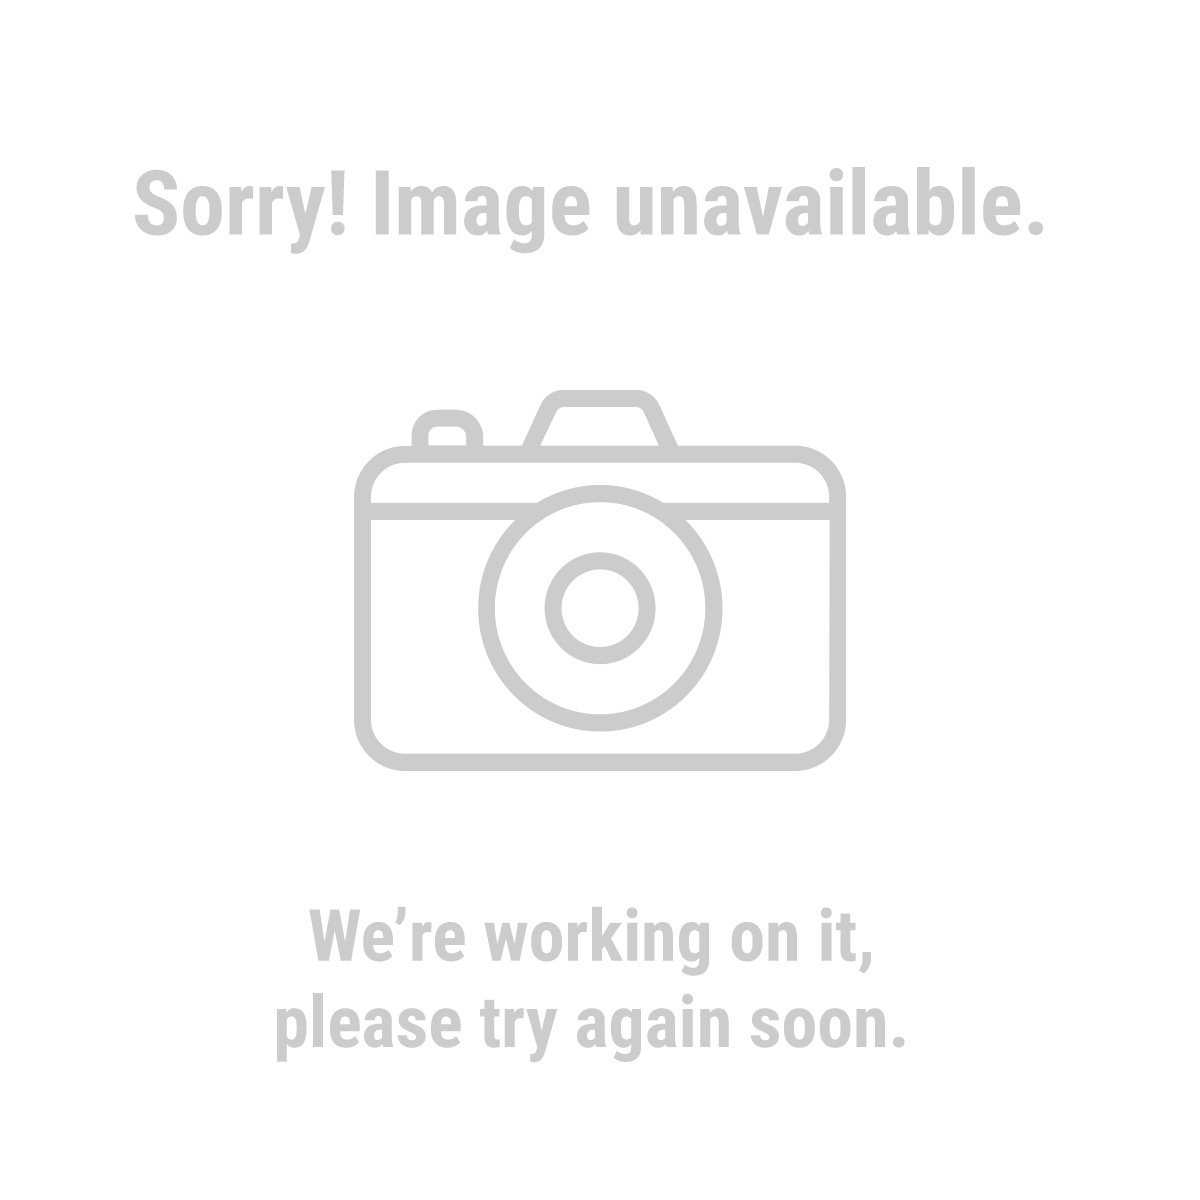 67604 Scratch Remover Repair Pads